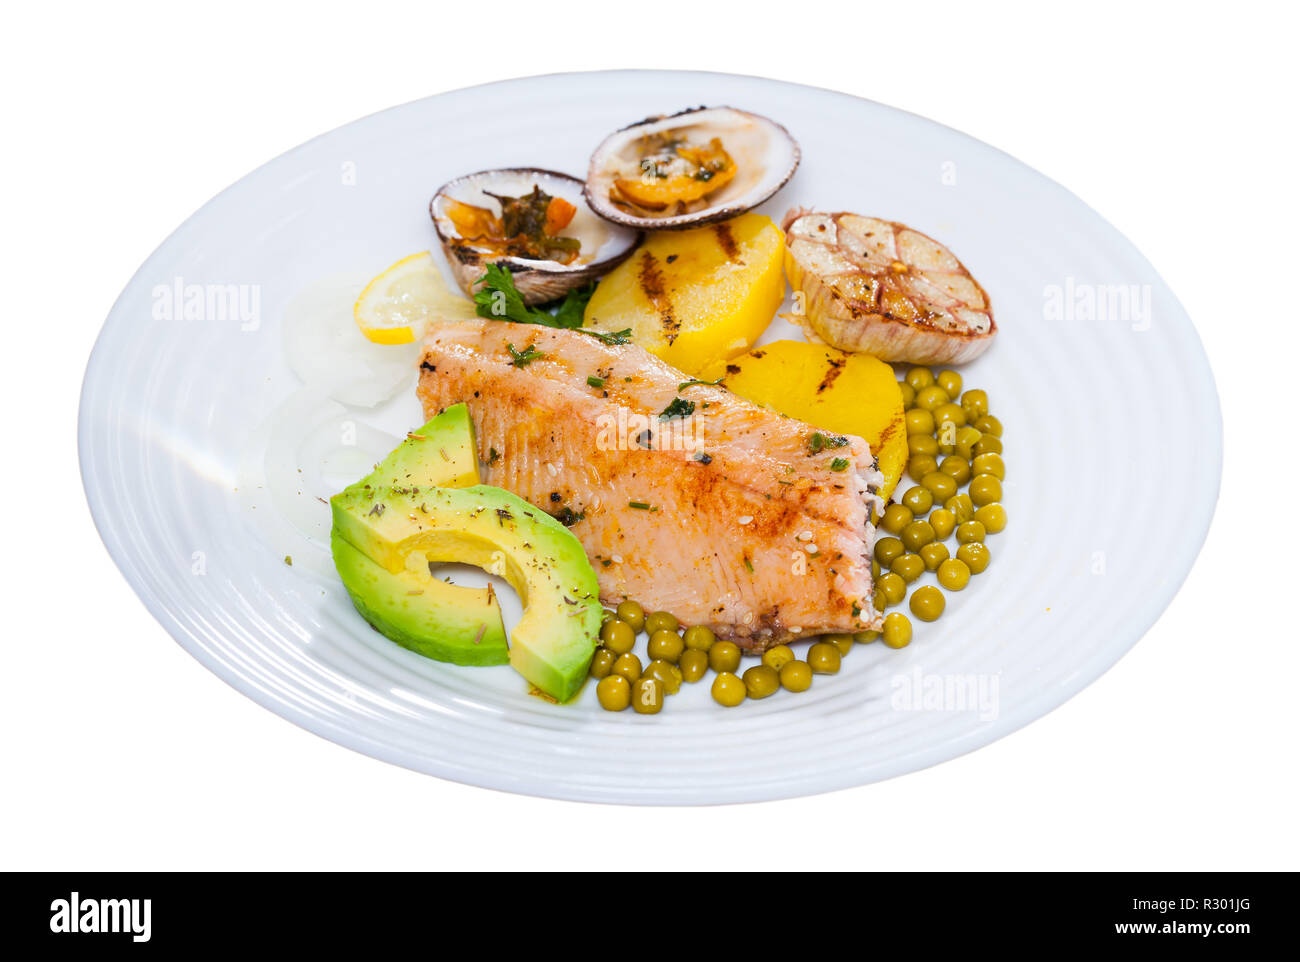 Fried trout fillet served with vegetables and almendra de mar. Isolated over white background - Stock Image